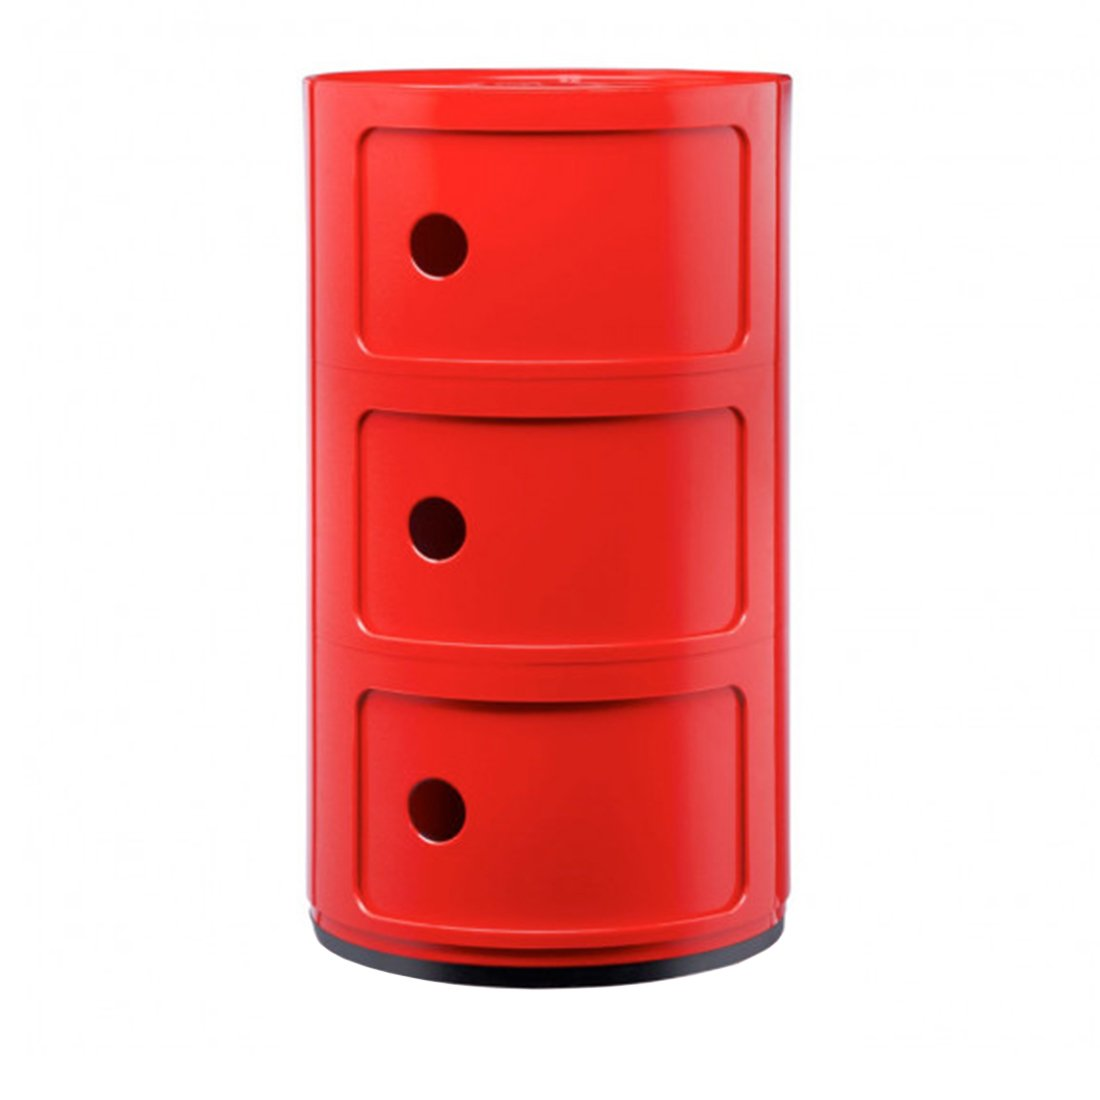 Kartell Componibili 4967 Rood